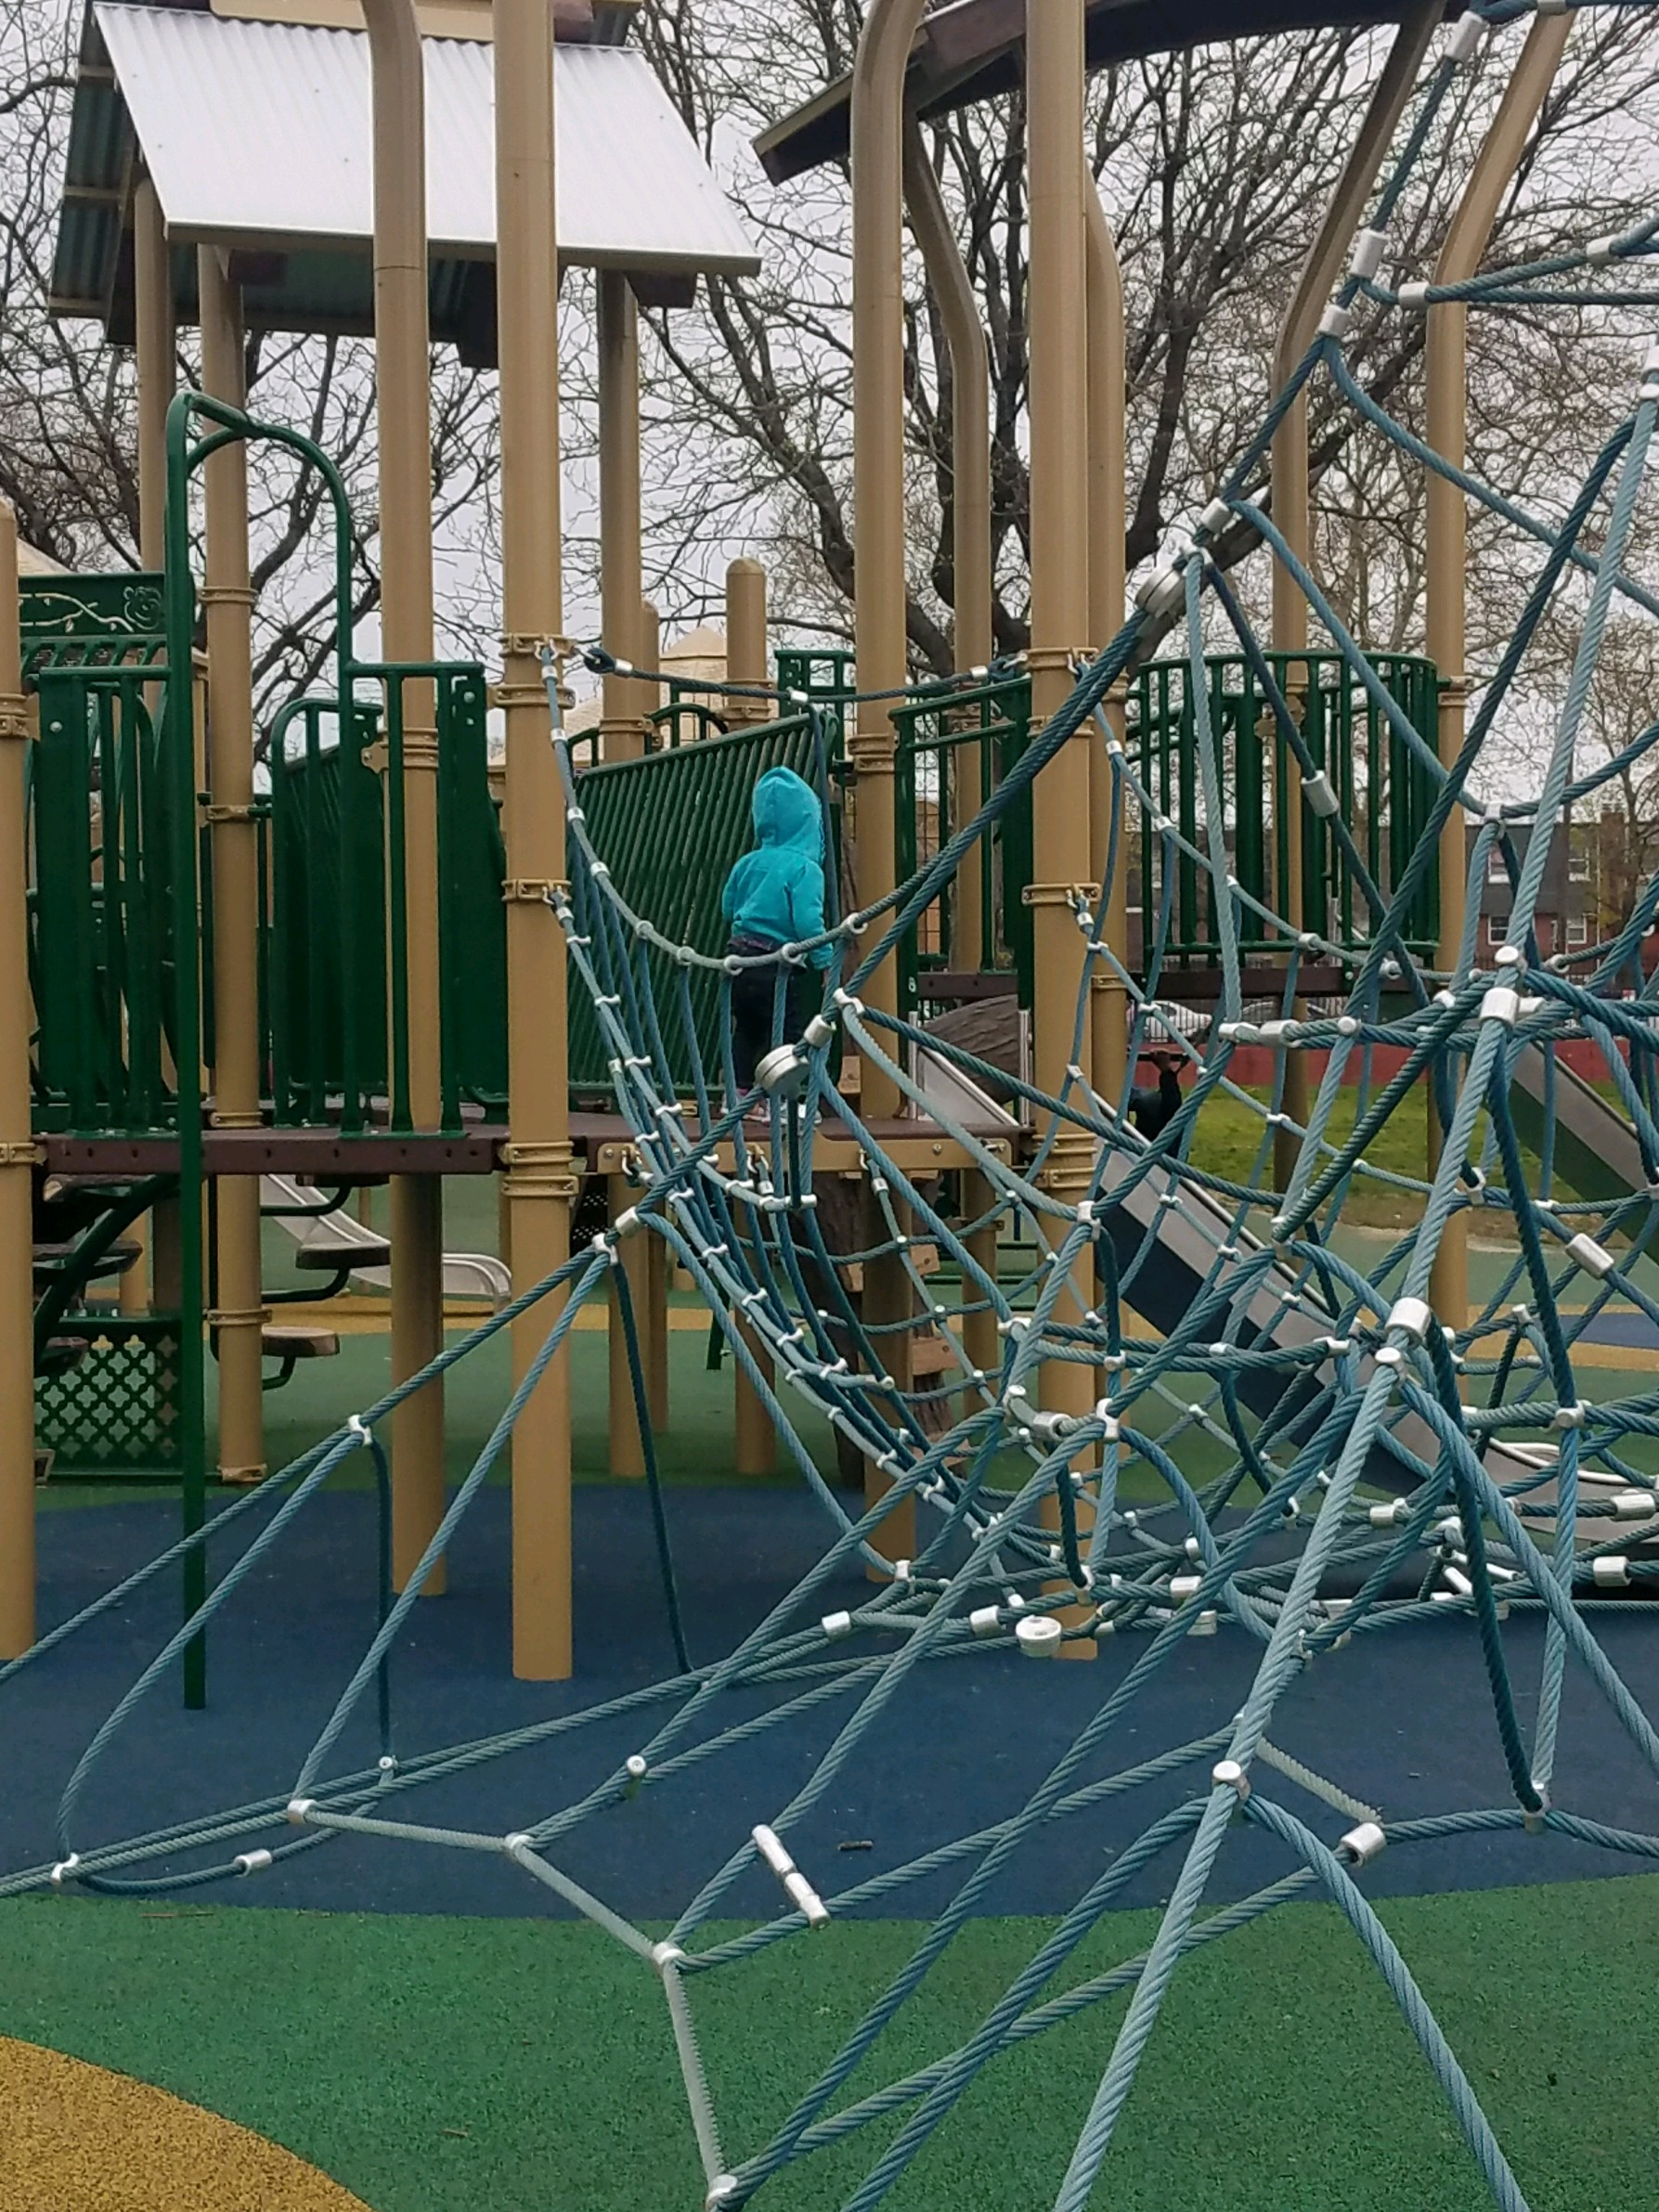 A child plays at Murphy Rec's inclusive playground. (Frank Turner)